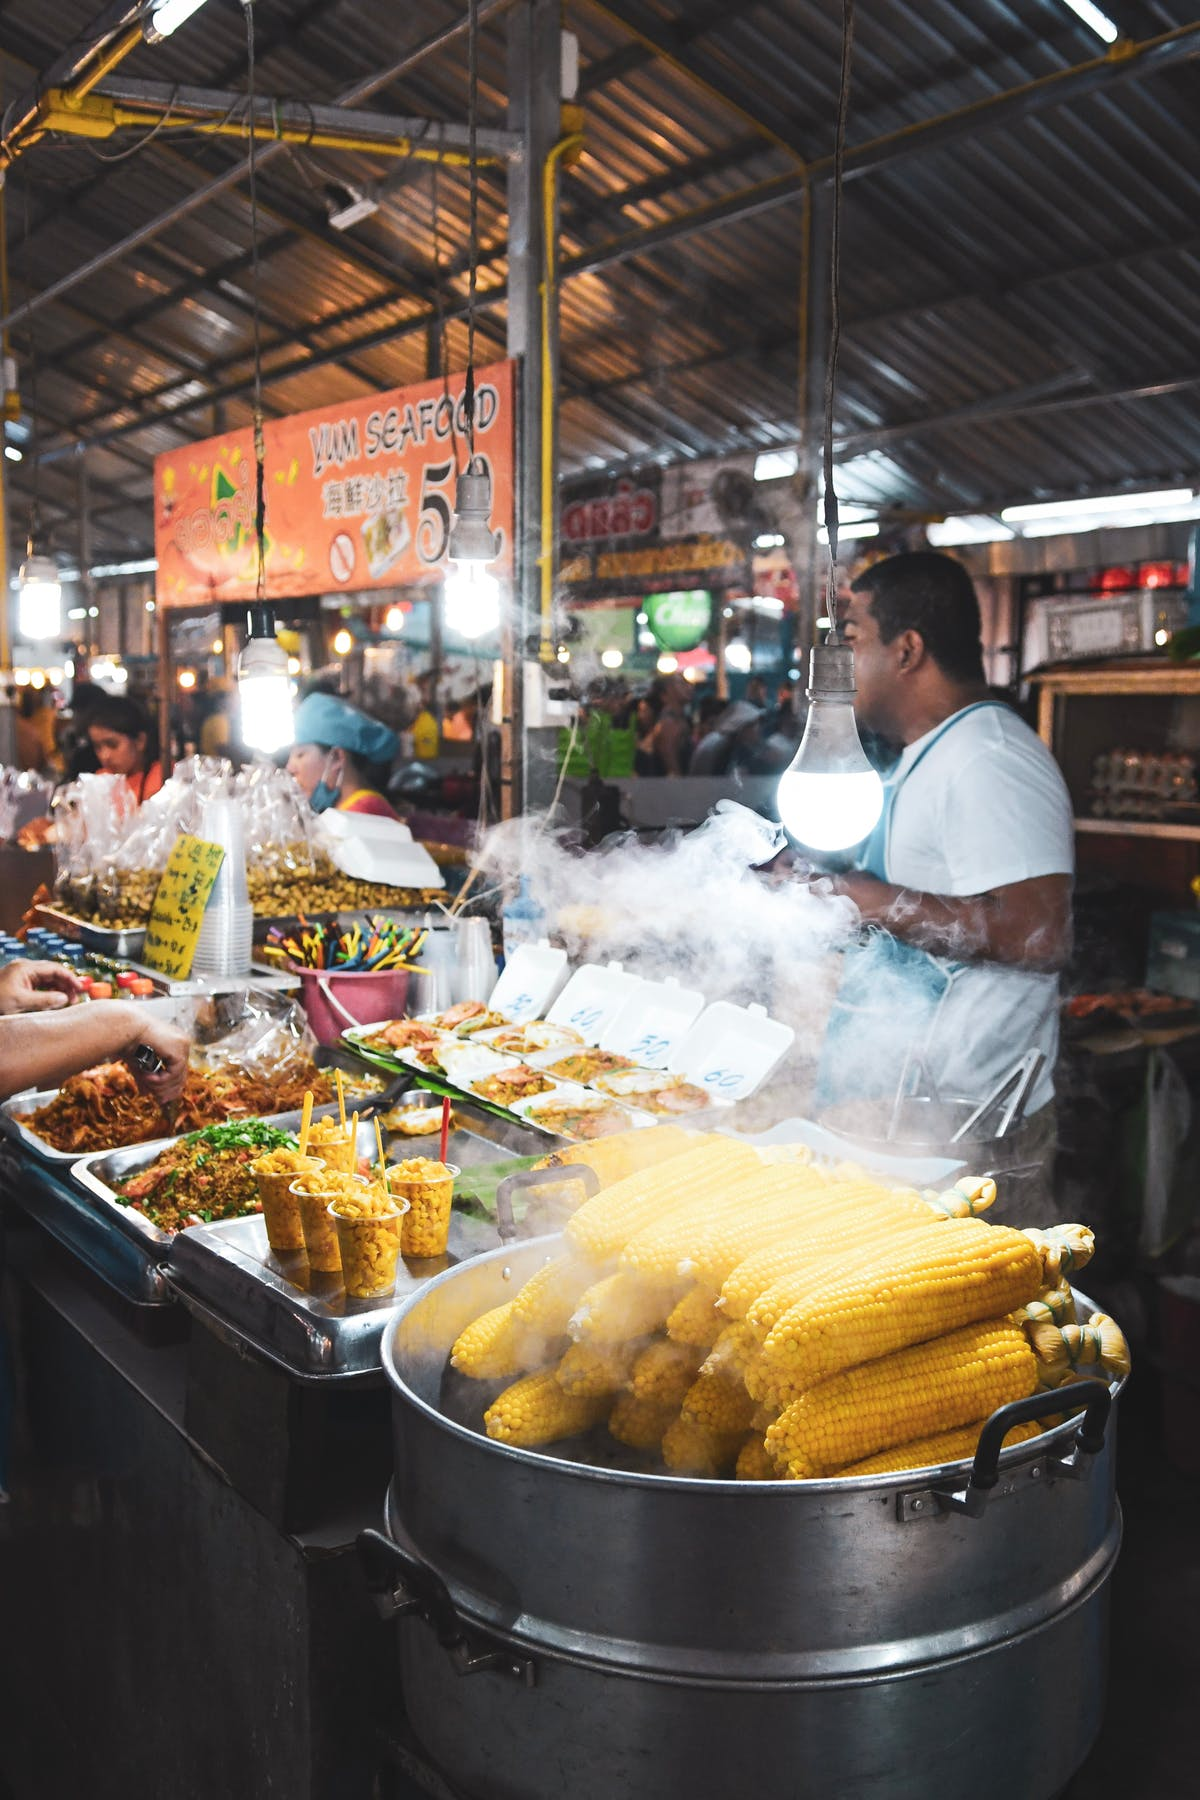 A corner of the market with varied food - Photo by Bao Menglong on Unsplash